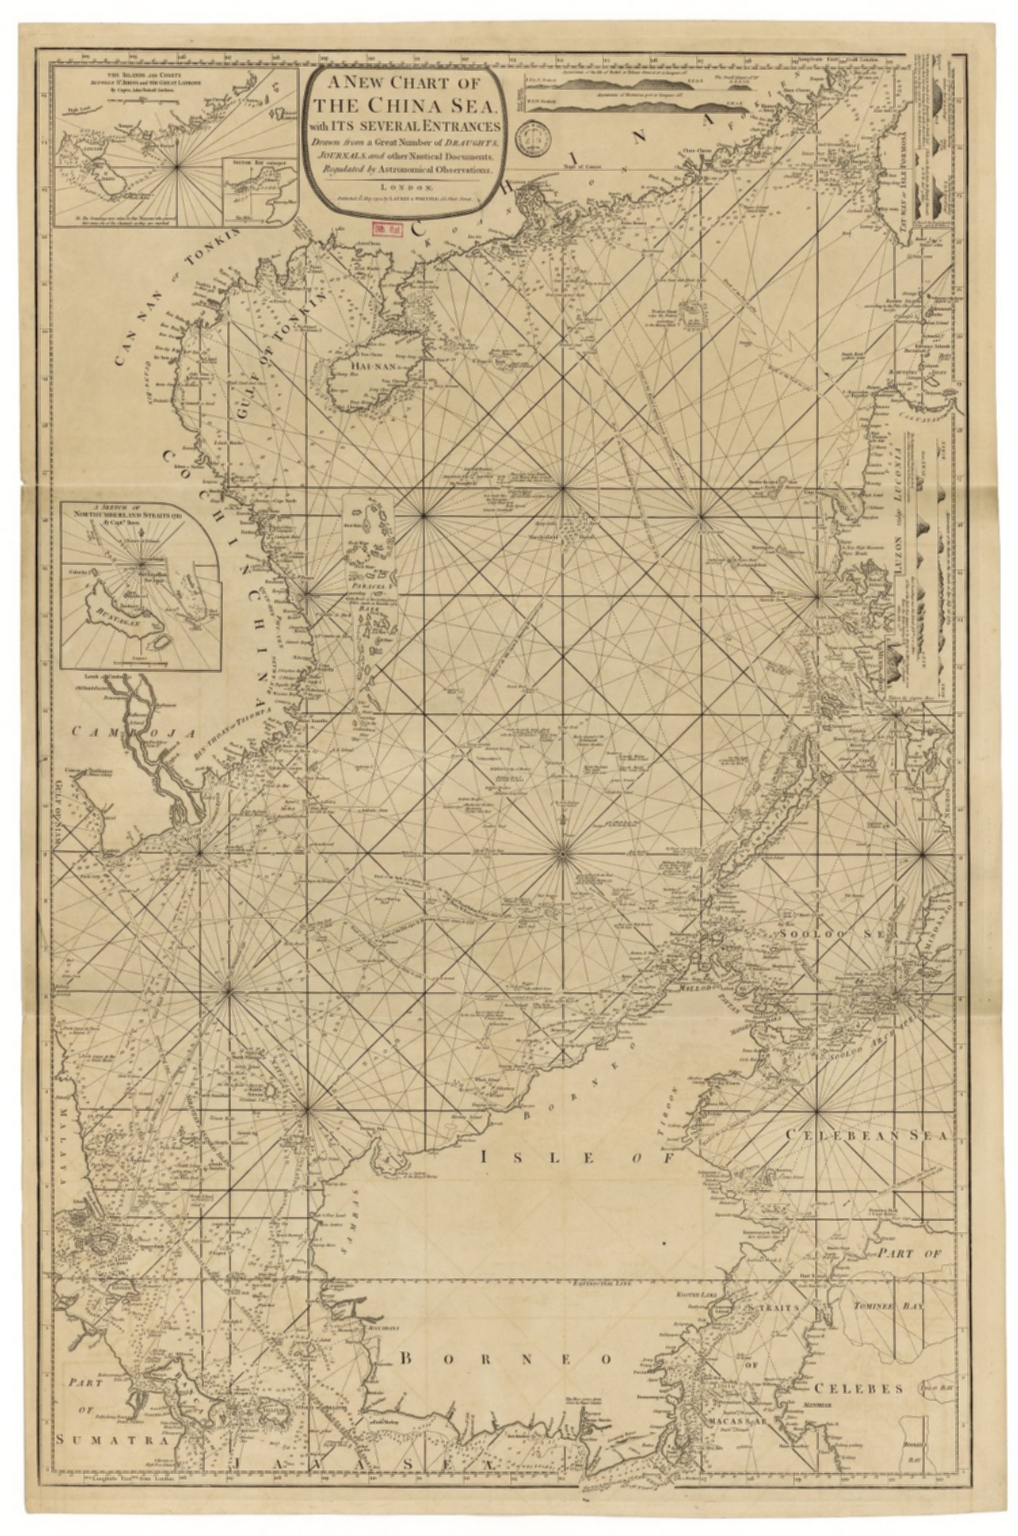 A new chart of the China Sea, with its several entrances : drawn from a great number of draughts, journals, and other National documents, regulated by astronomical observation